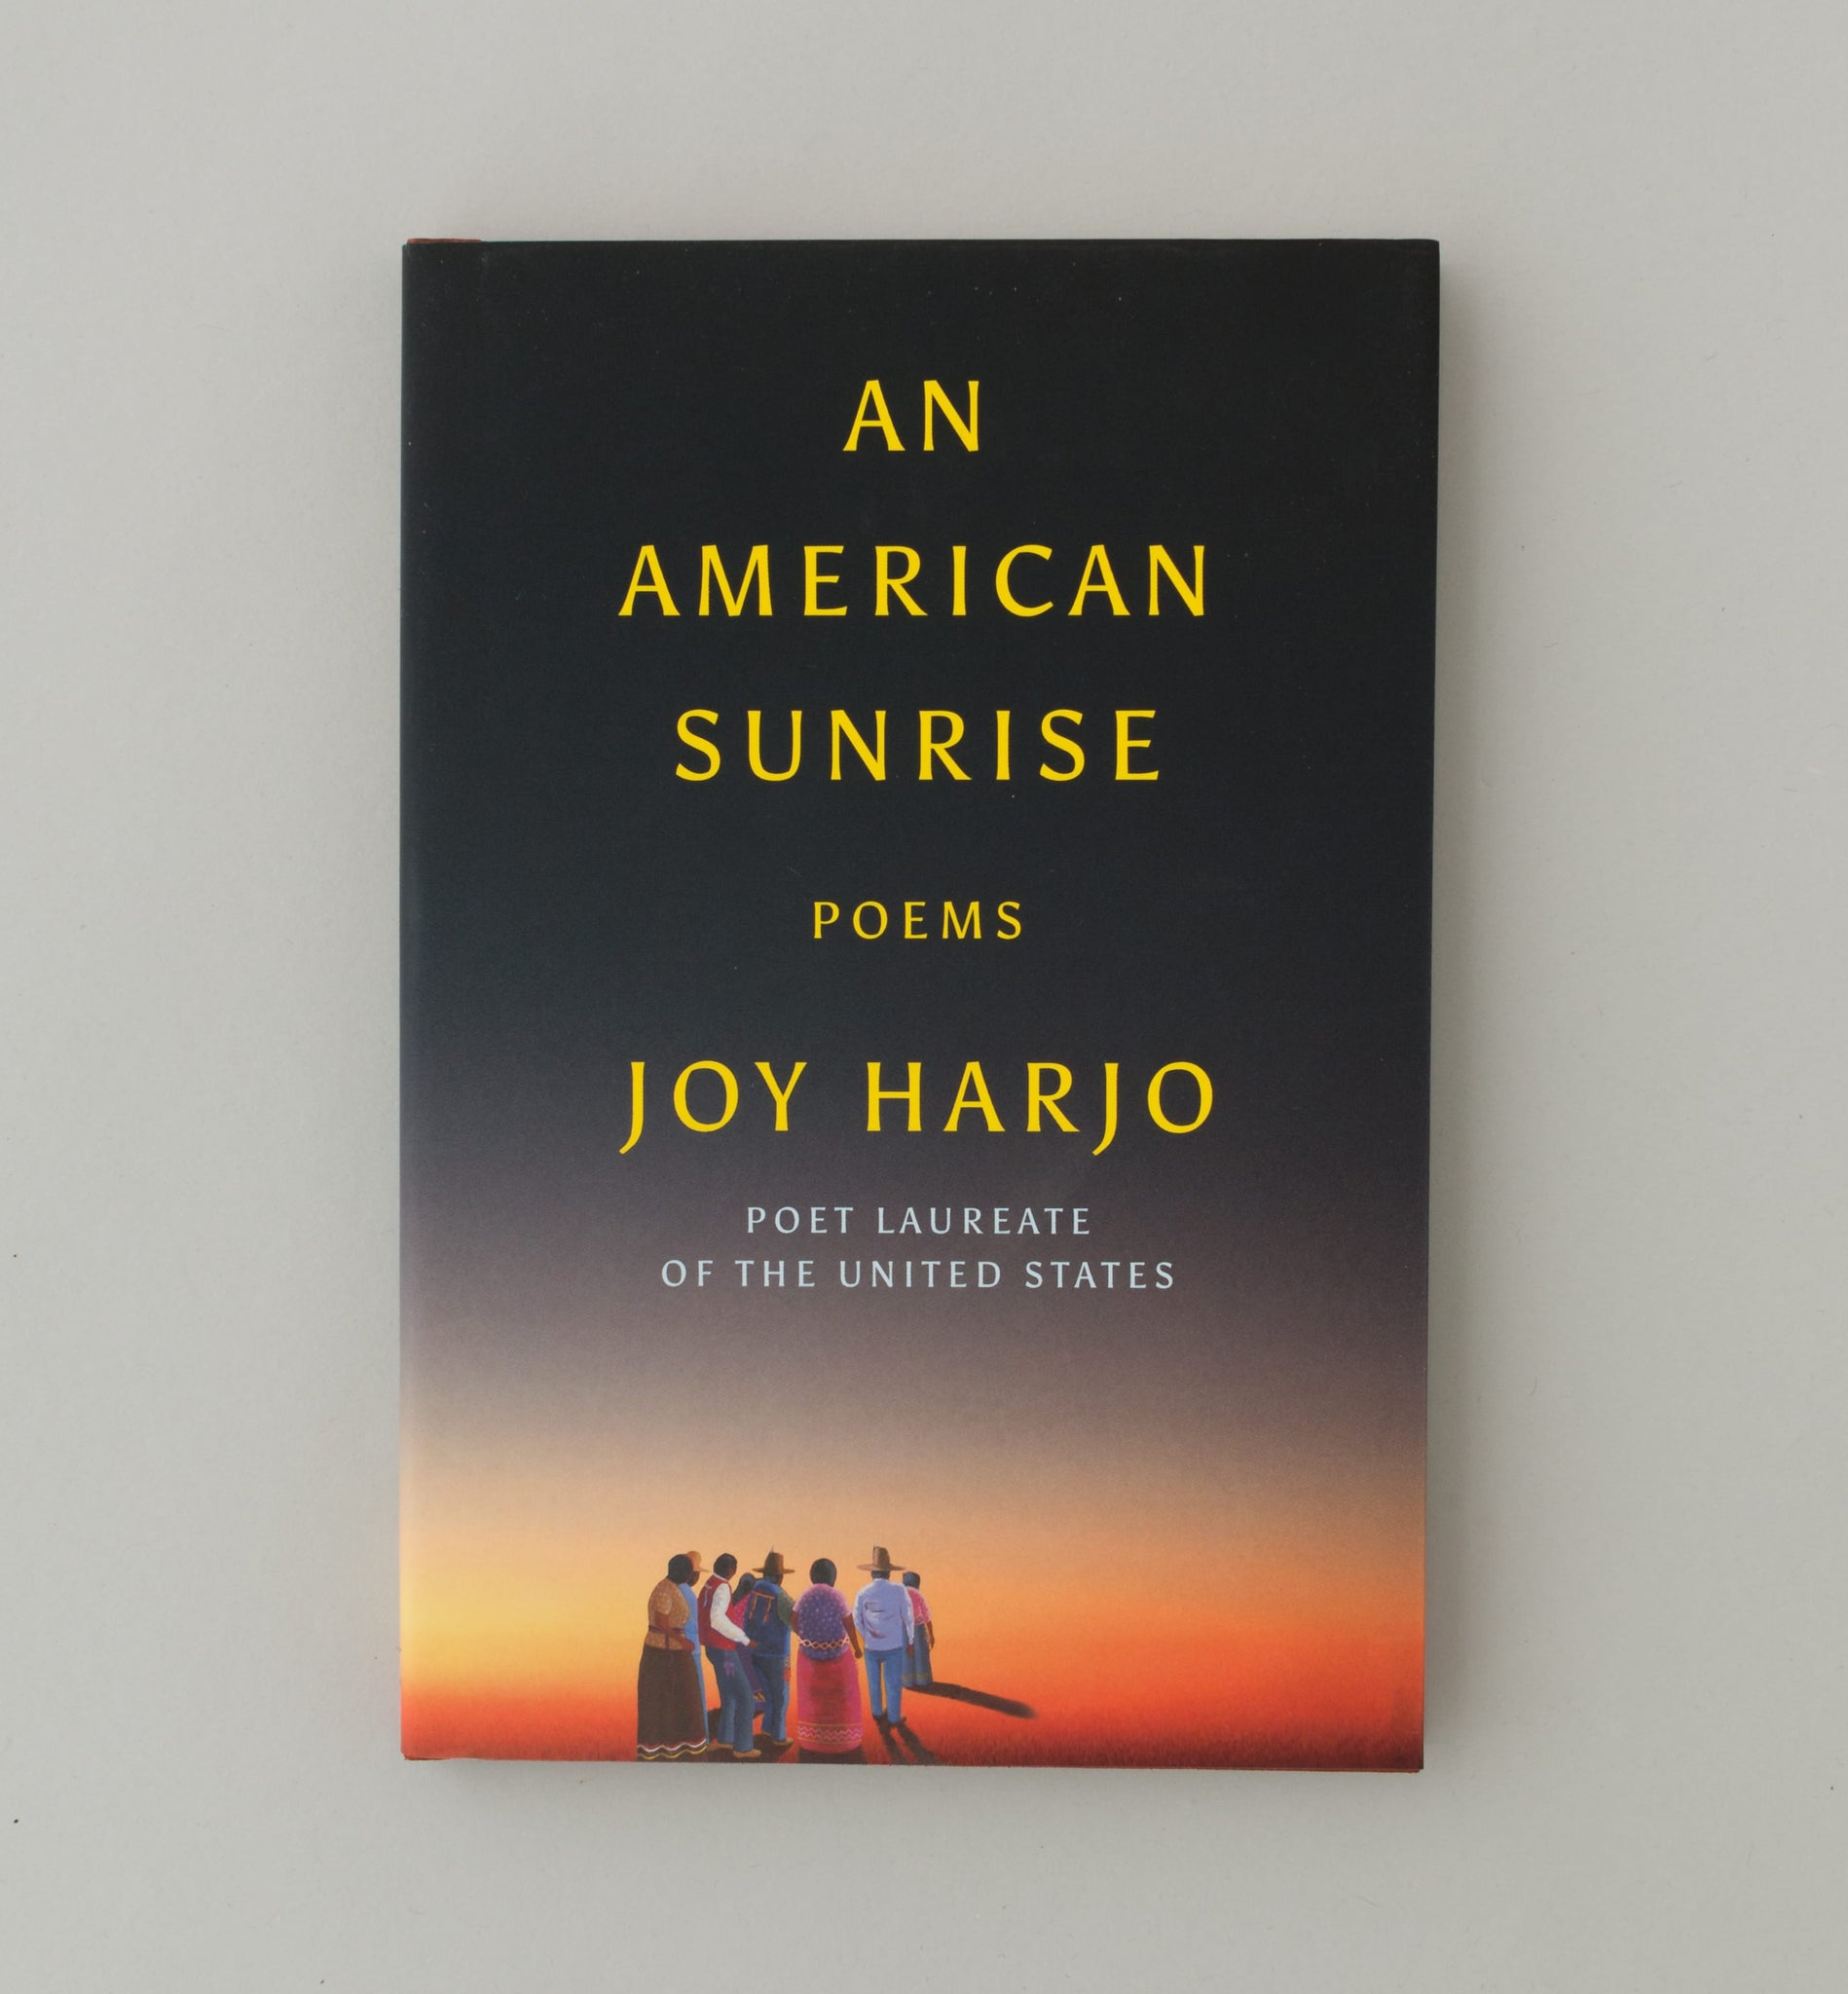 An American Sunrise (Poems) by Joy Harjo